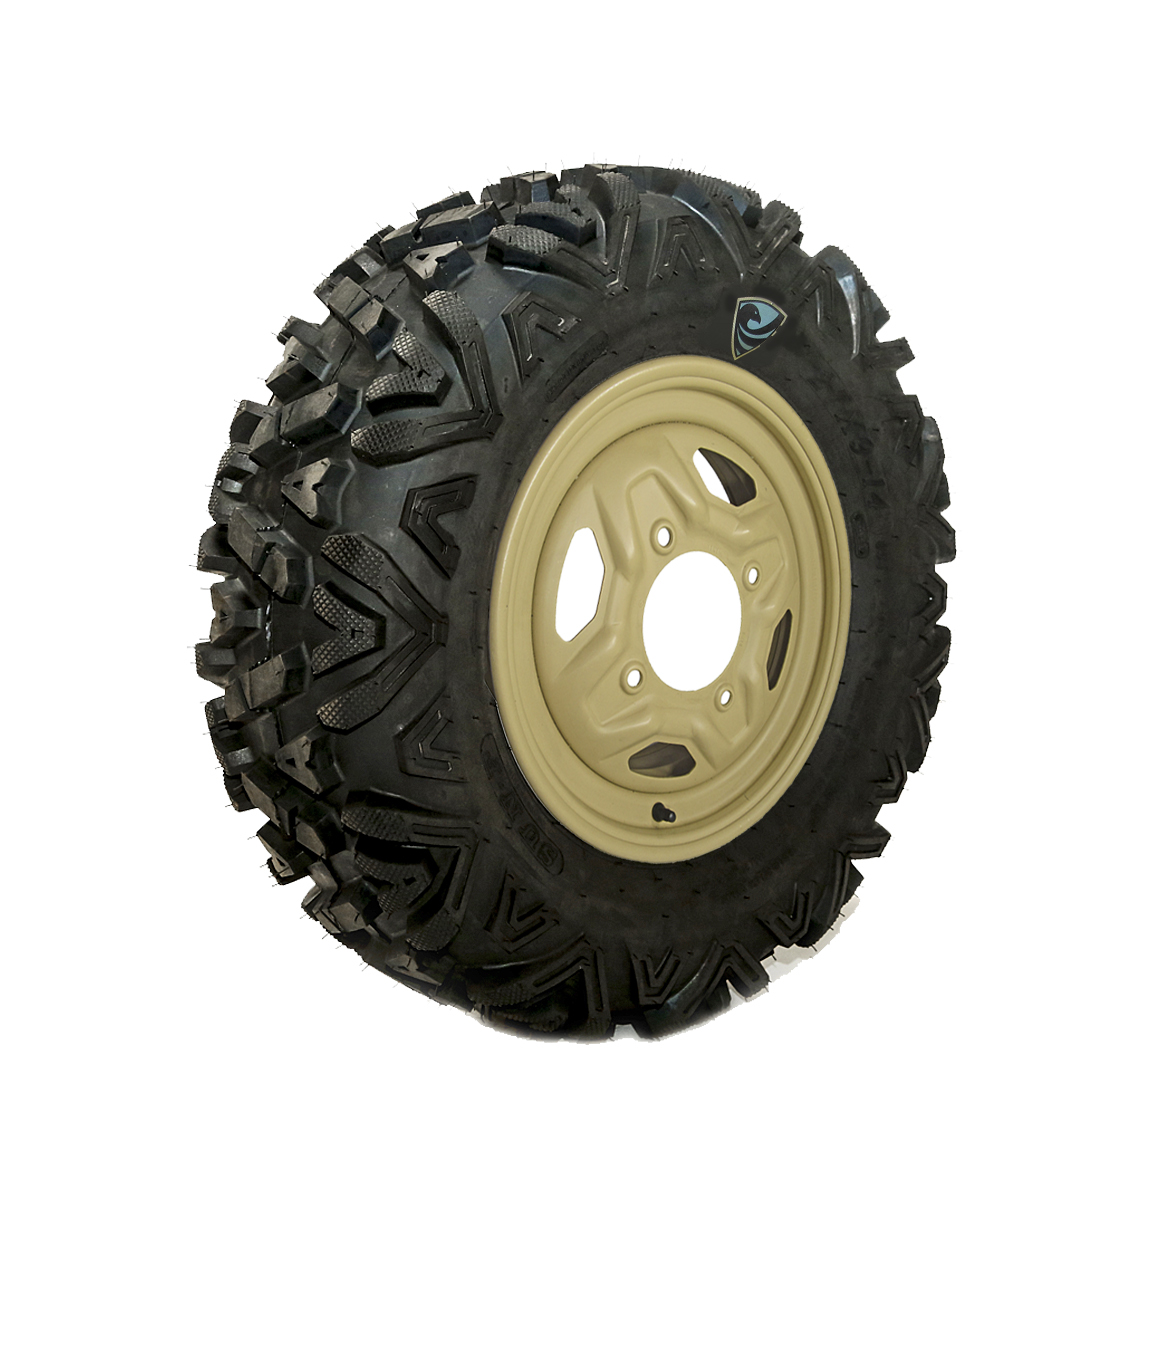 spartan run flat utv tire gps offroad products. Black Bedroom Furniture Sets. Home Design Ideas